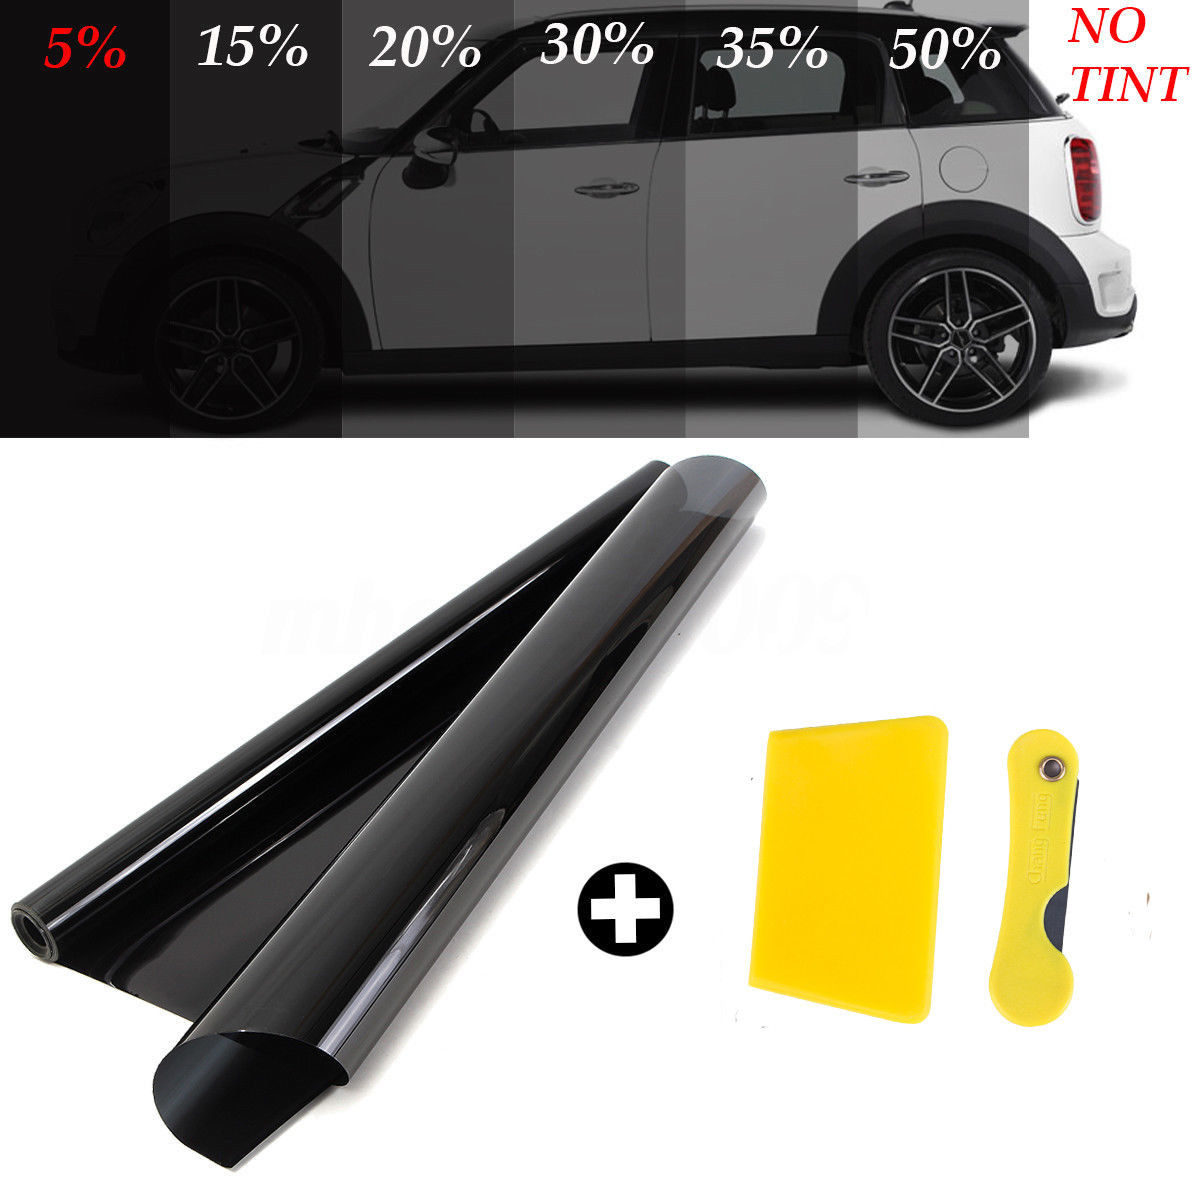 Film-Roll Car-Sticker Uv-Protector Window-Glass Auto Solar Insulation VLT Uncut 300cm